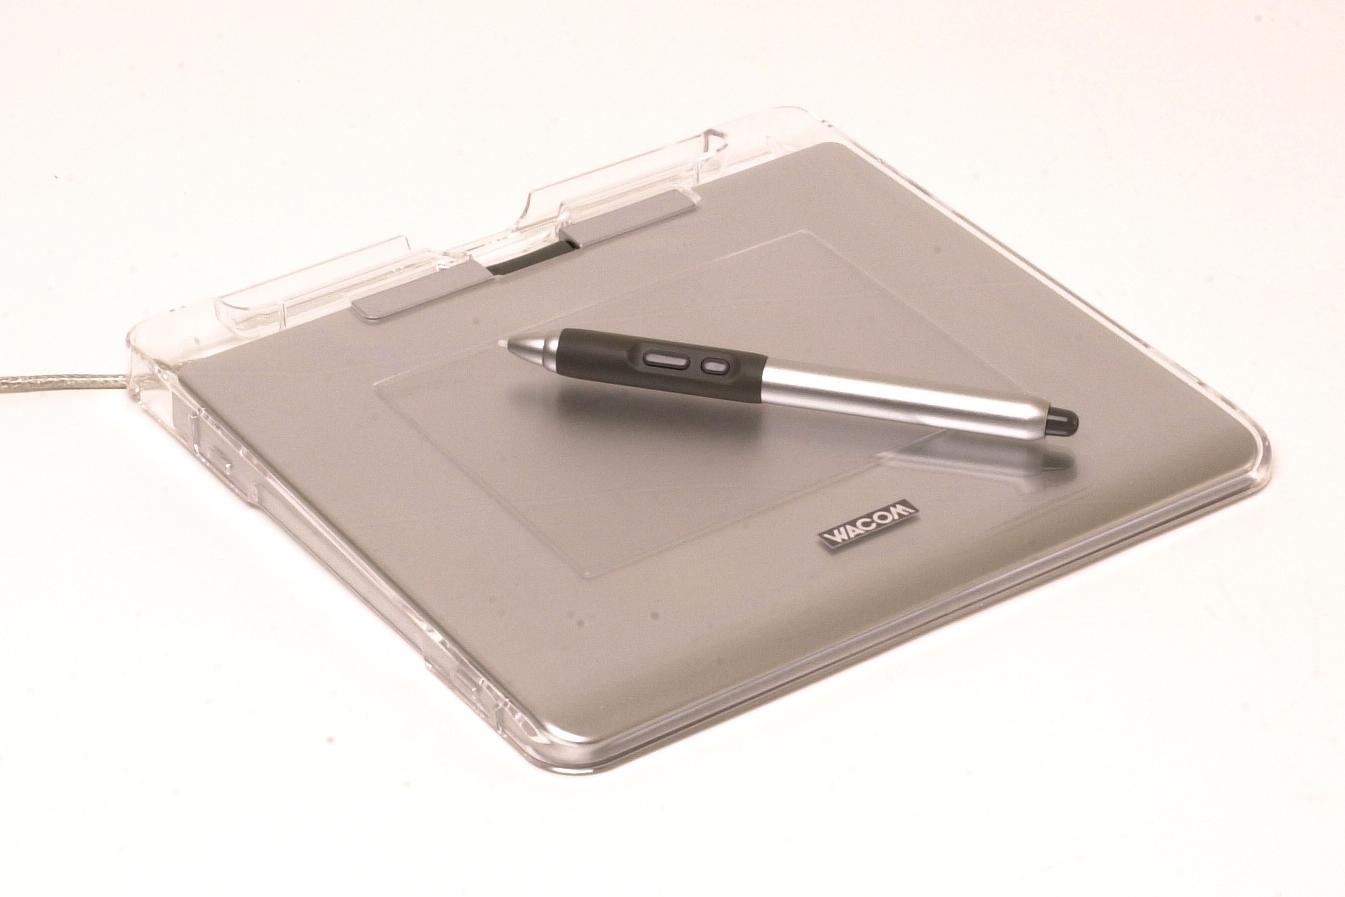 Wacom Graphire 4 CTE-440 Review: - PC Components - Keyboards